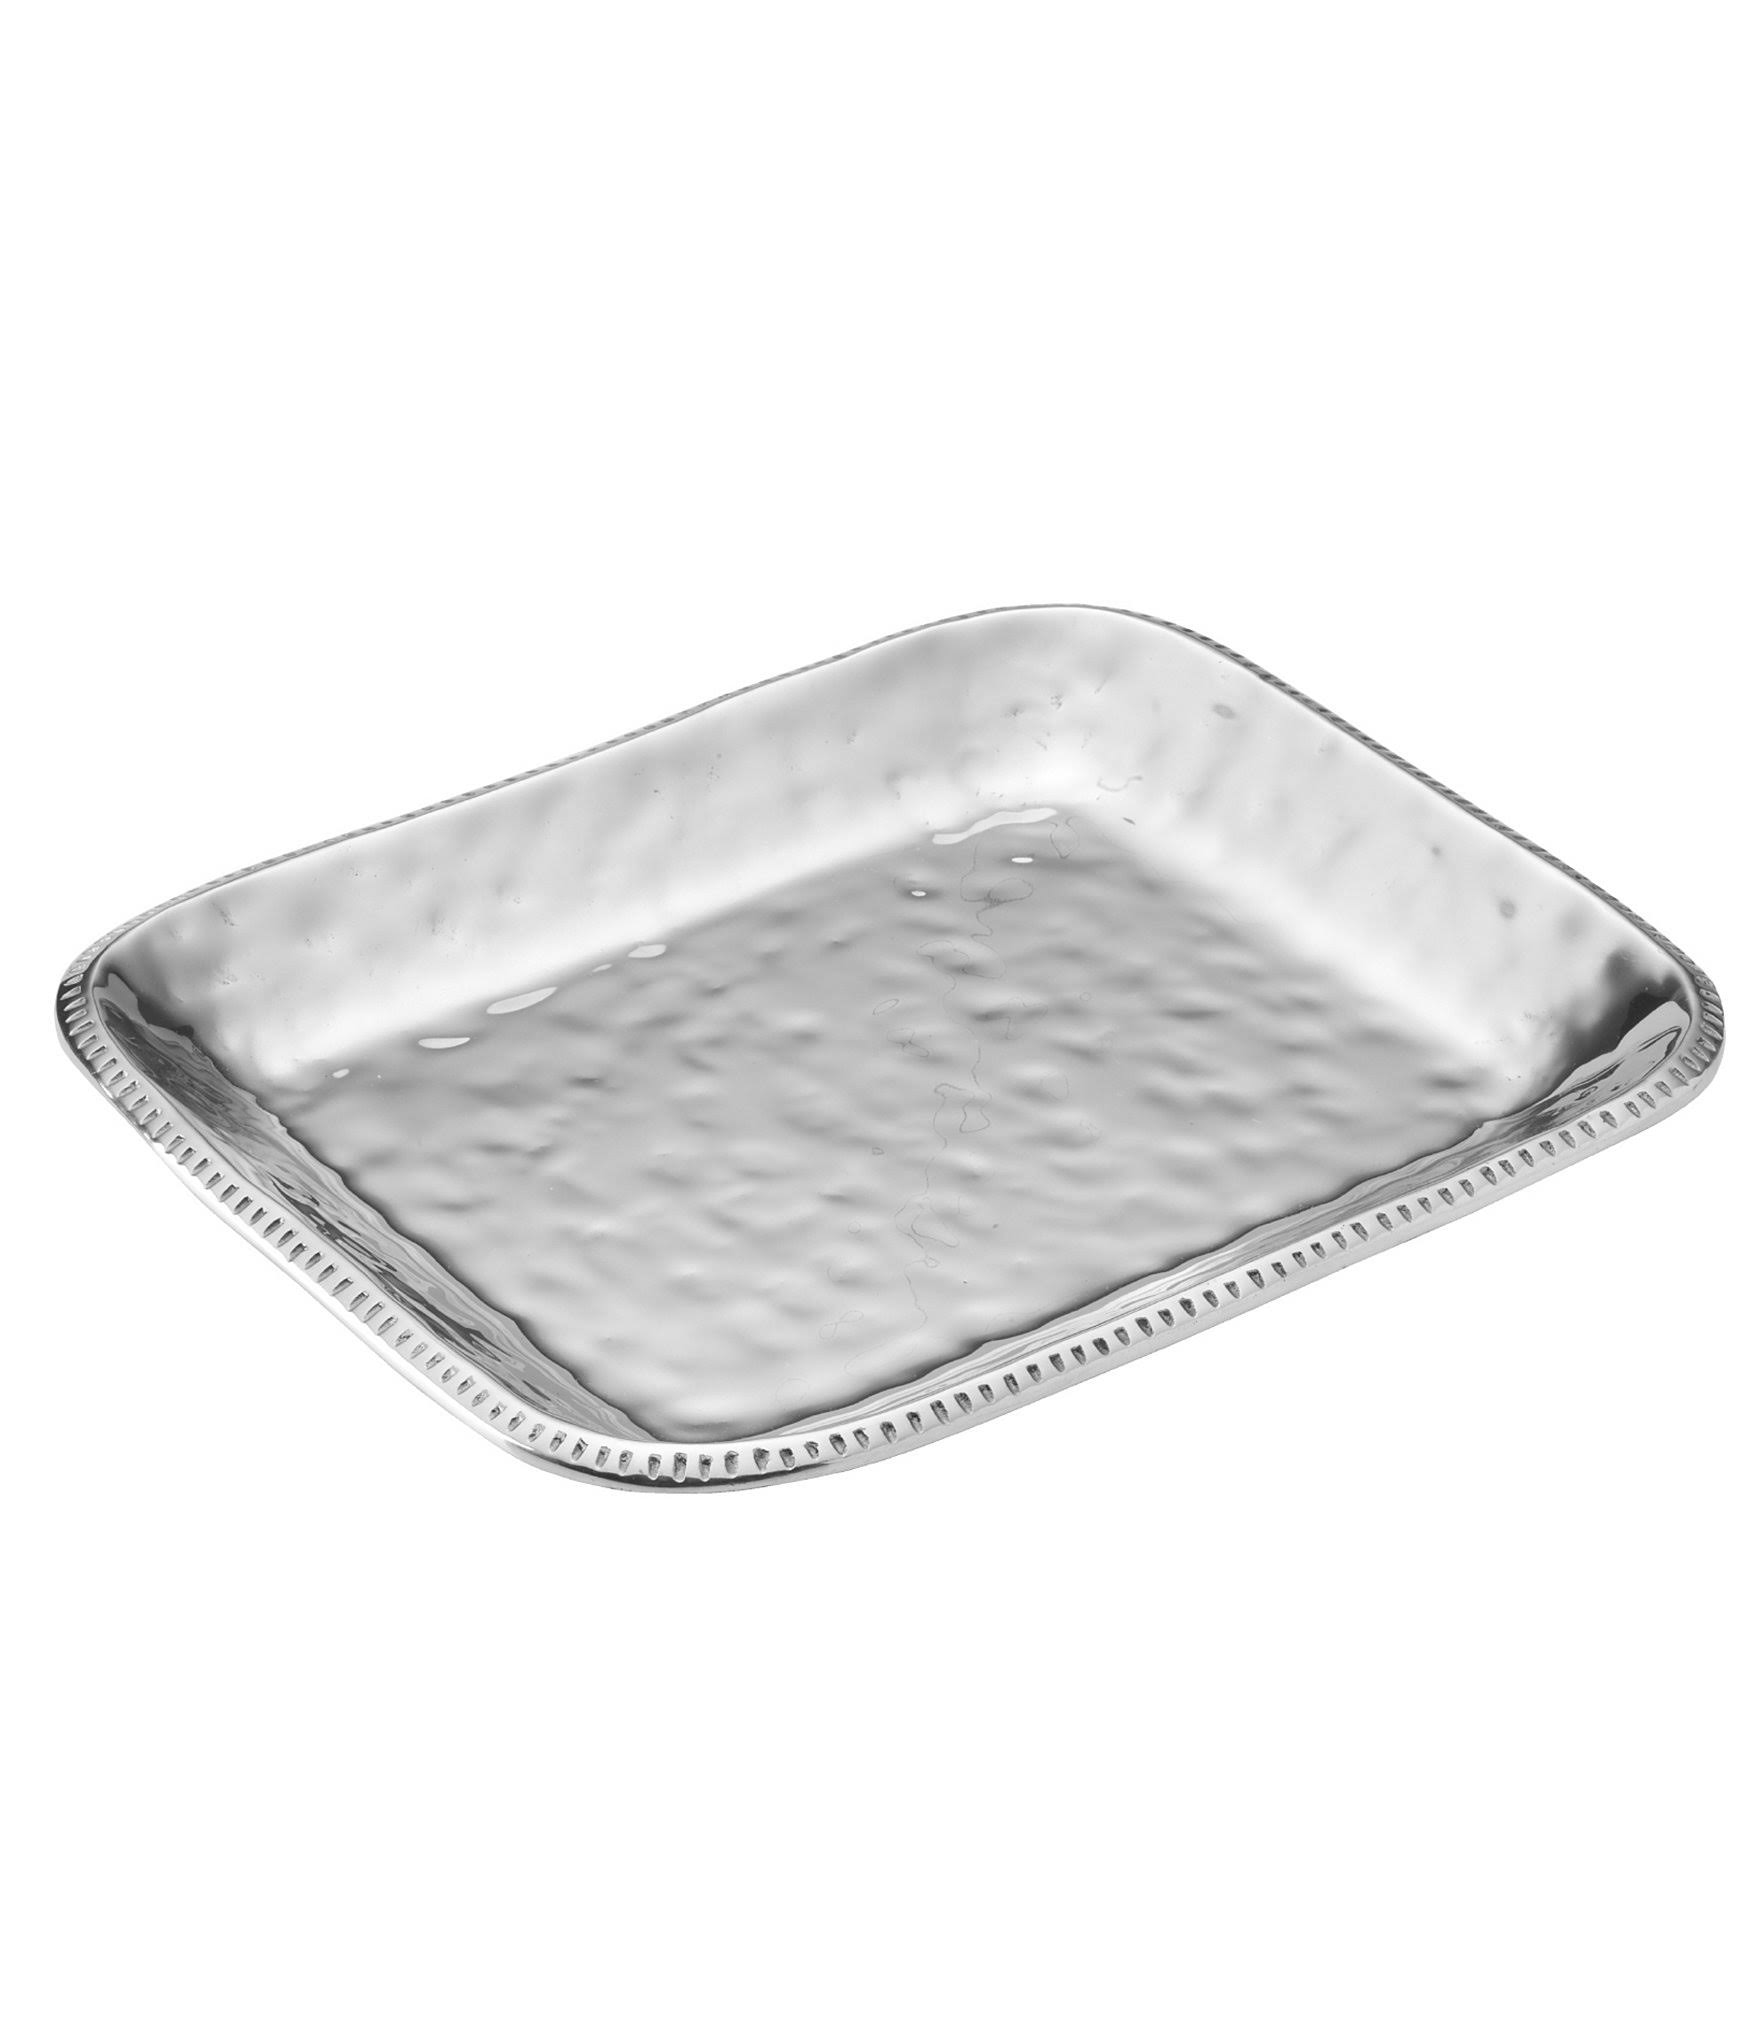 Wilton Armetale River Rock Large Rectangular Tray, Silver(Aluminum)